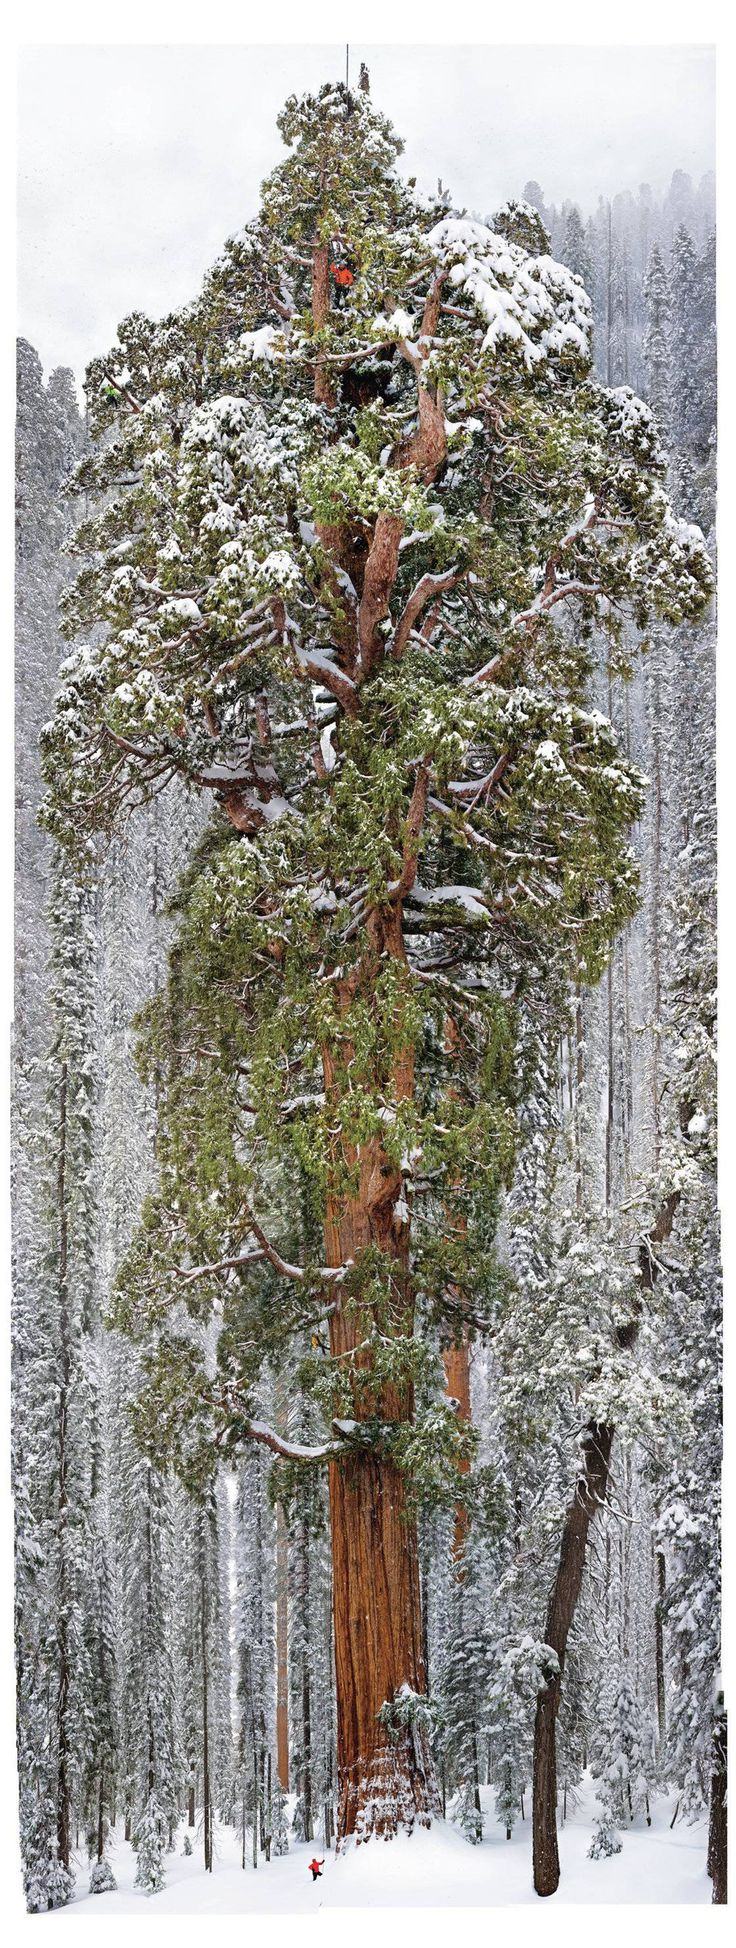 3,200 year old tree in the Sequoia National Park. (You really can't believe how massive it is until you are seeing it in person)